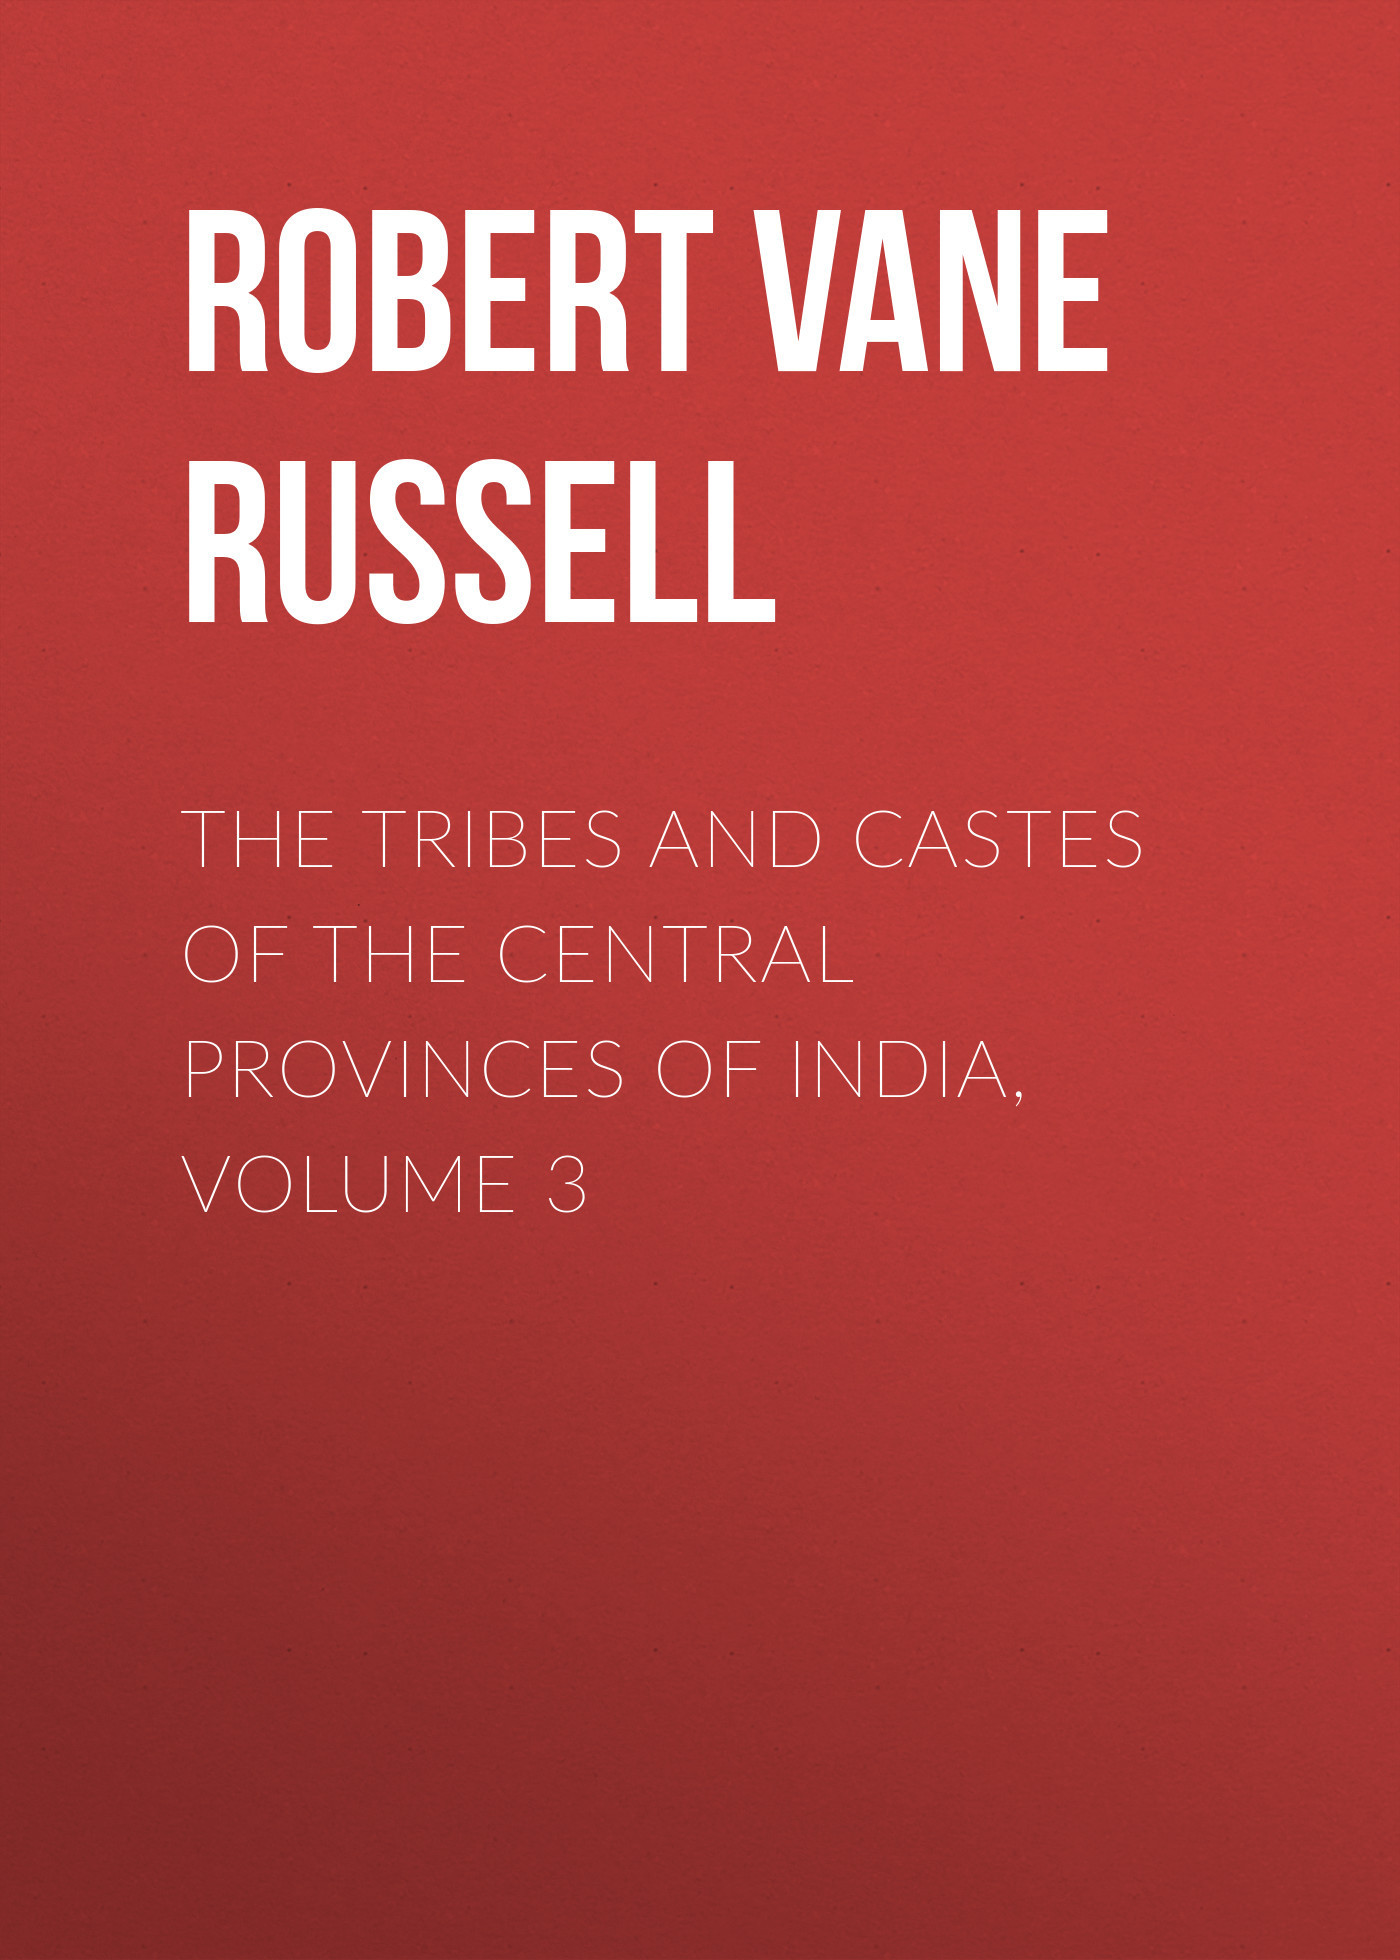 Robert Vane Russell The Tribes and Castes of the Central Provinces of India, Volume 3 natural enemy fauna in rice wheat system of india